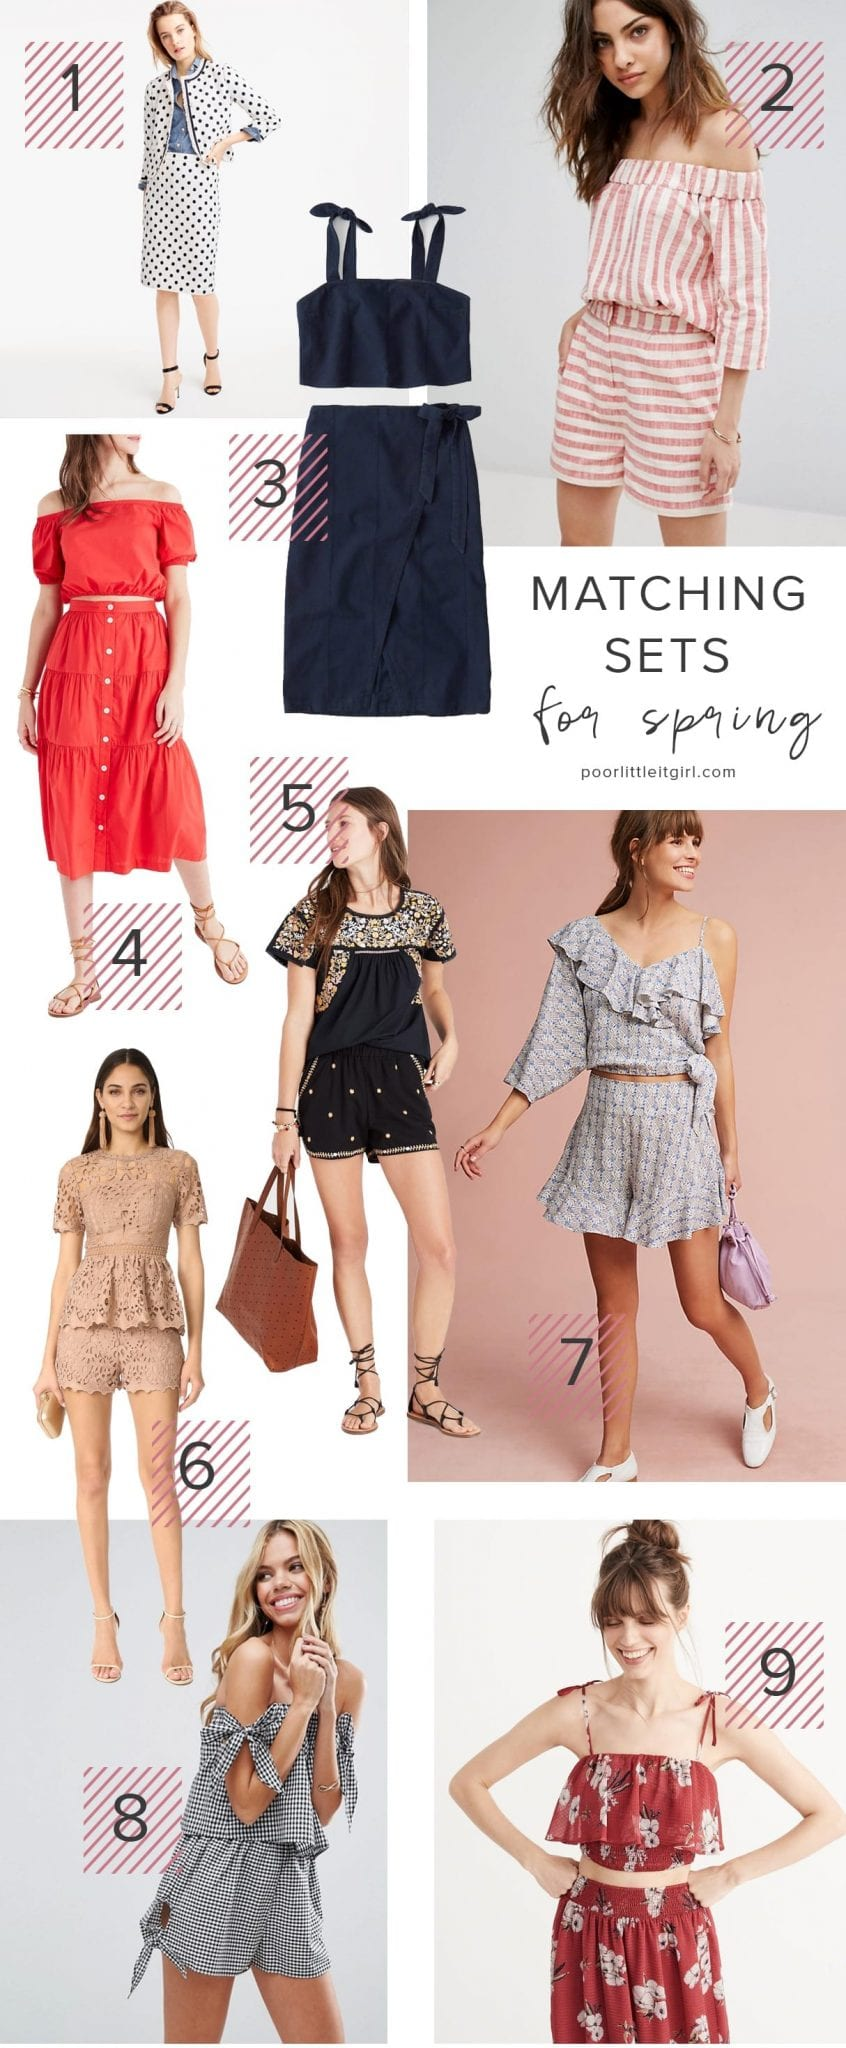 Matching Sets For Spring - Poor Little It Girl